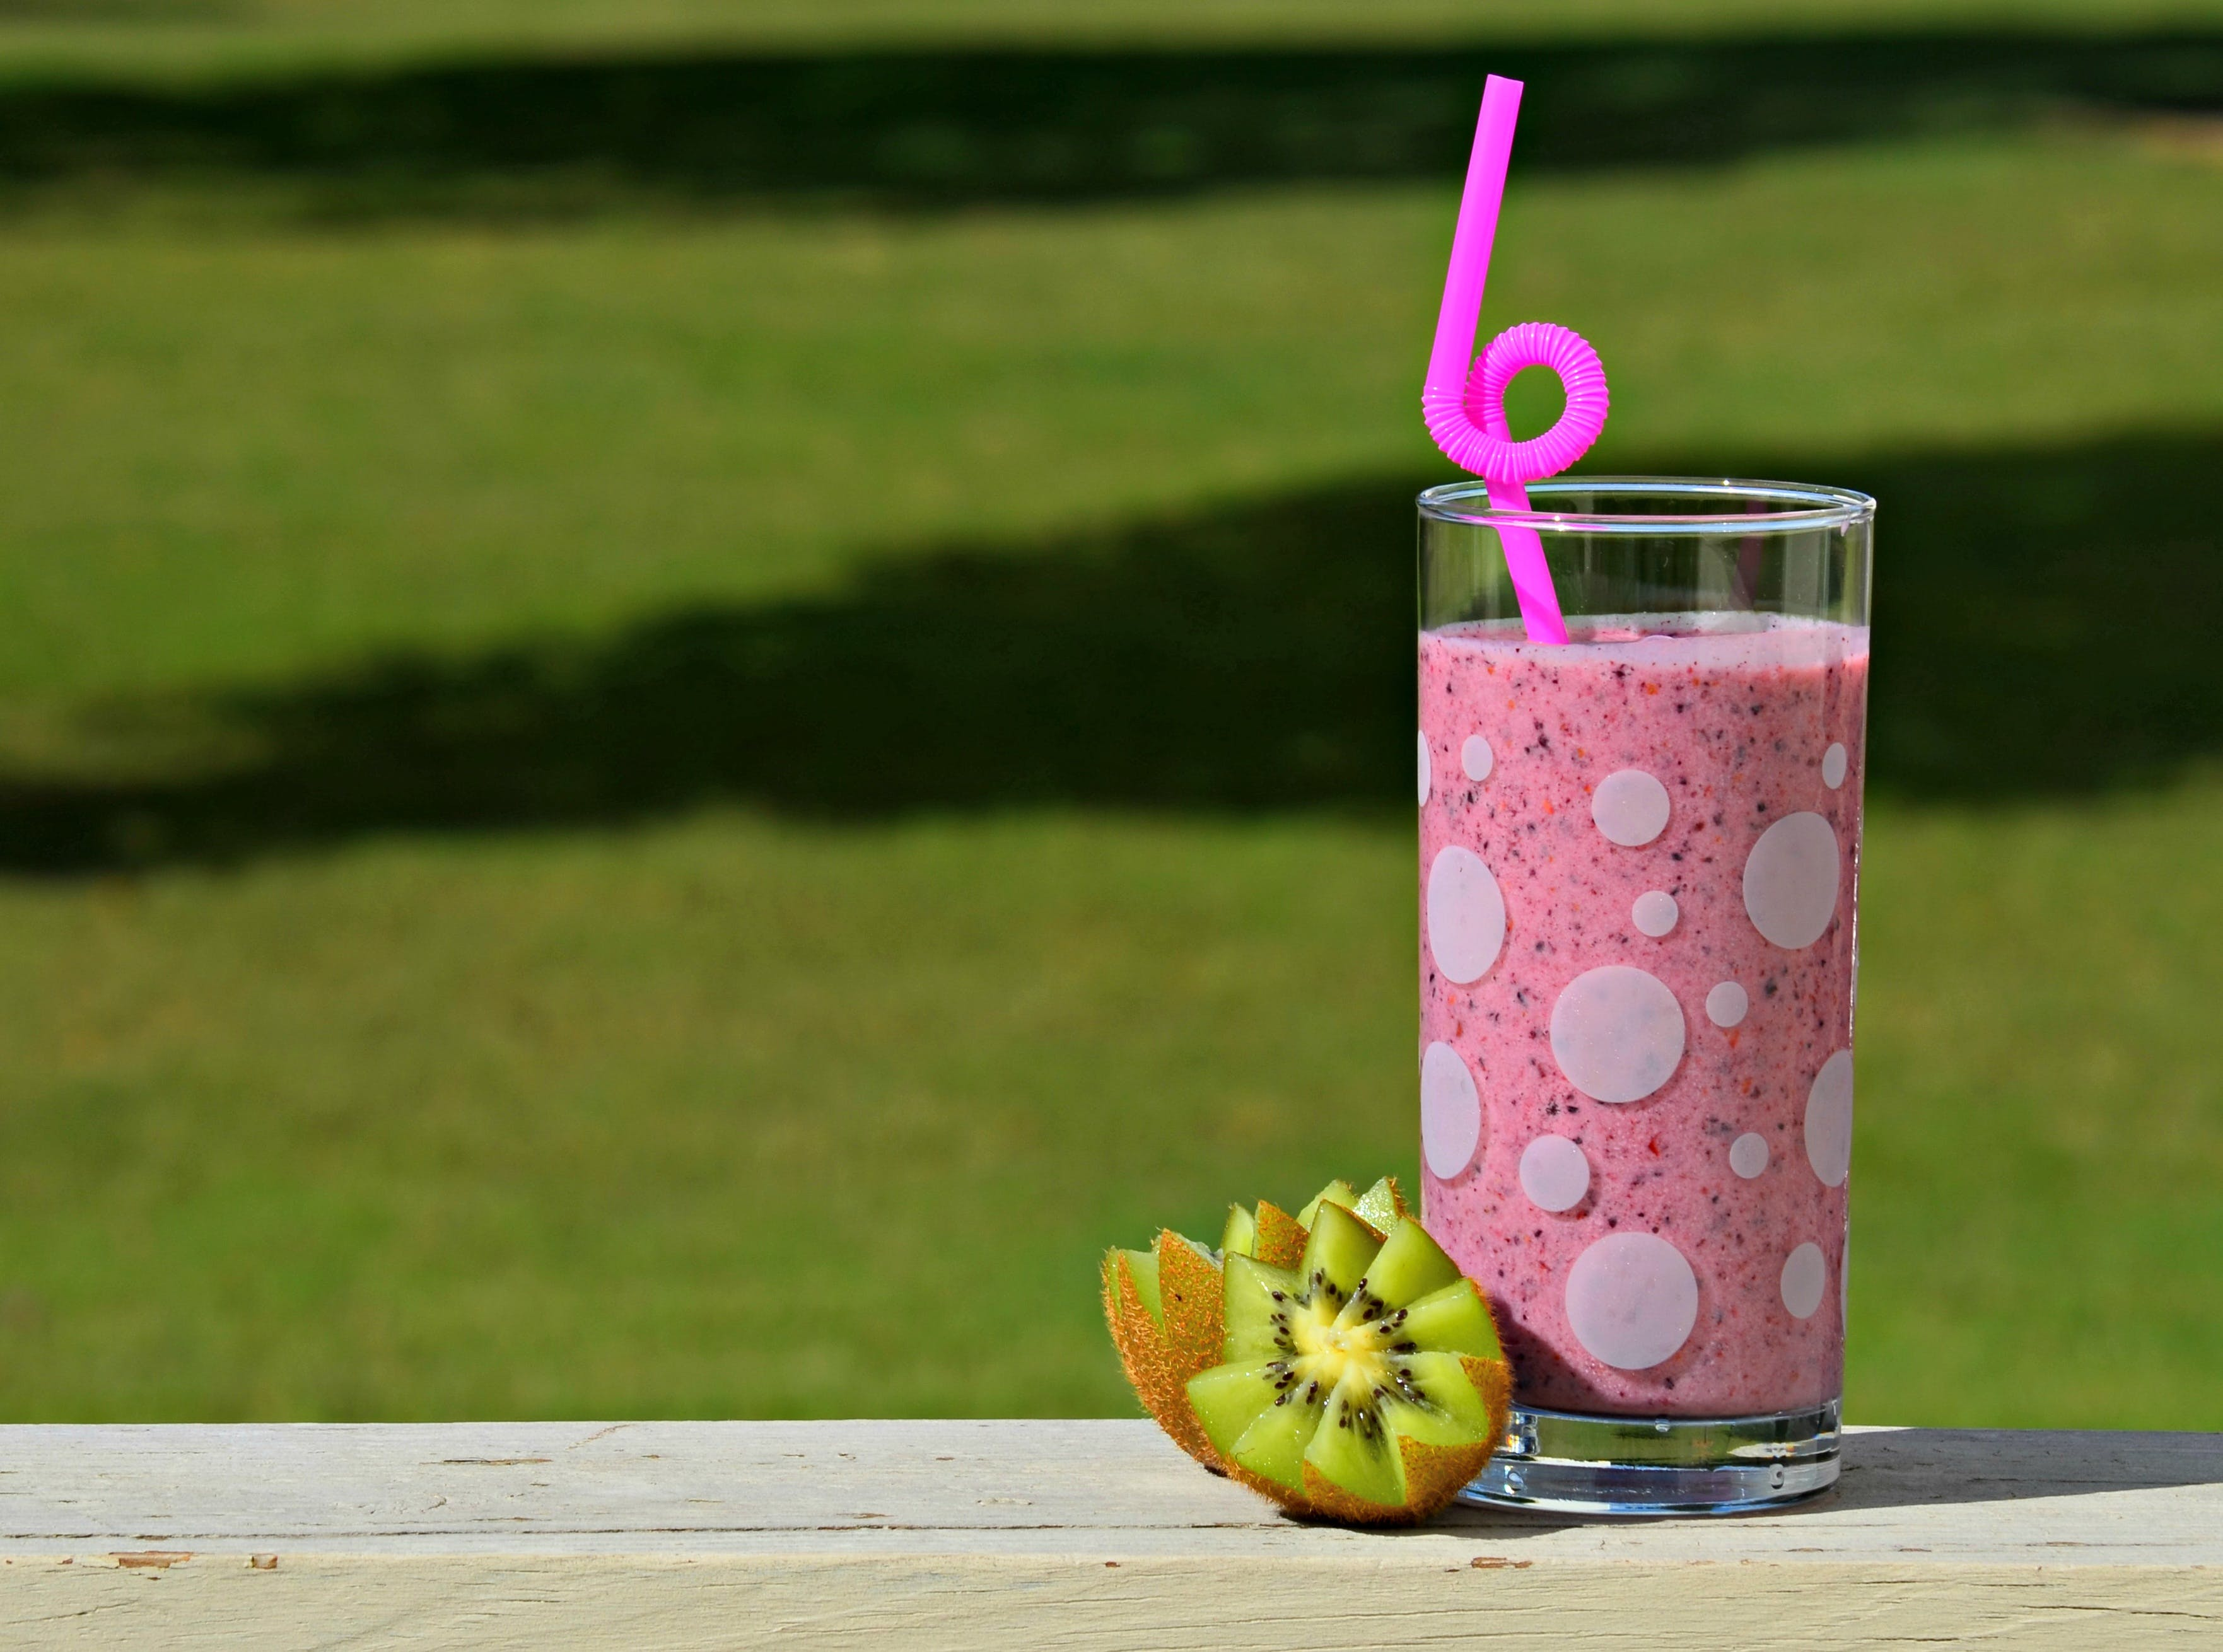 Clear Highball Glass Filled With Pink Liquid